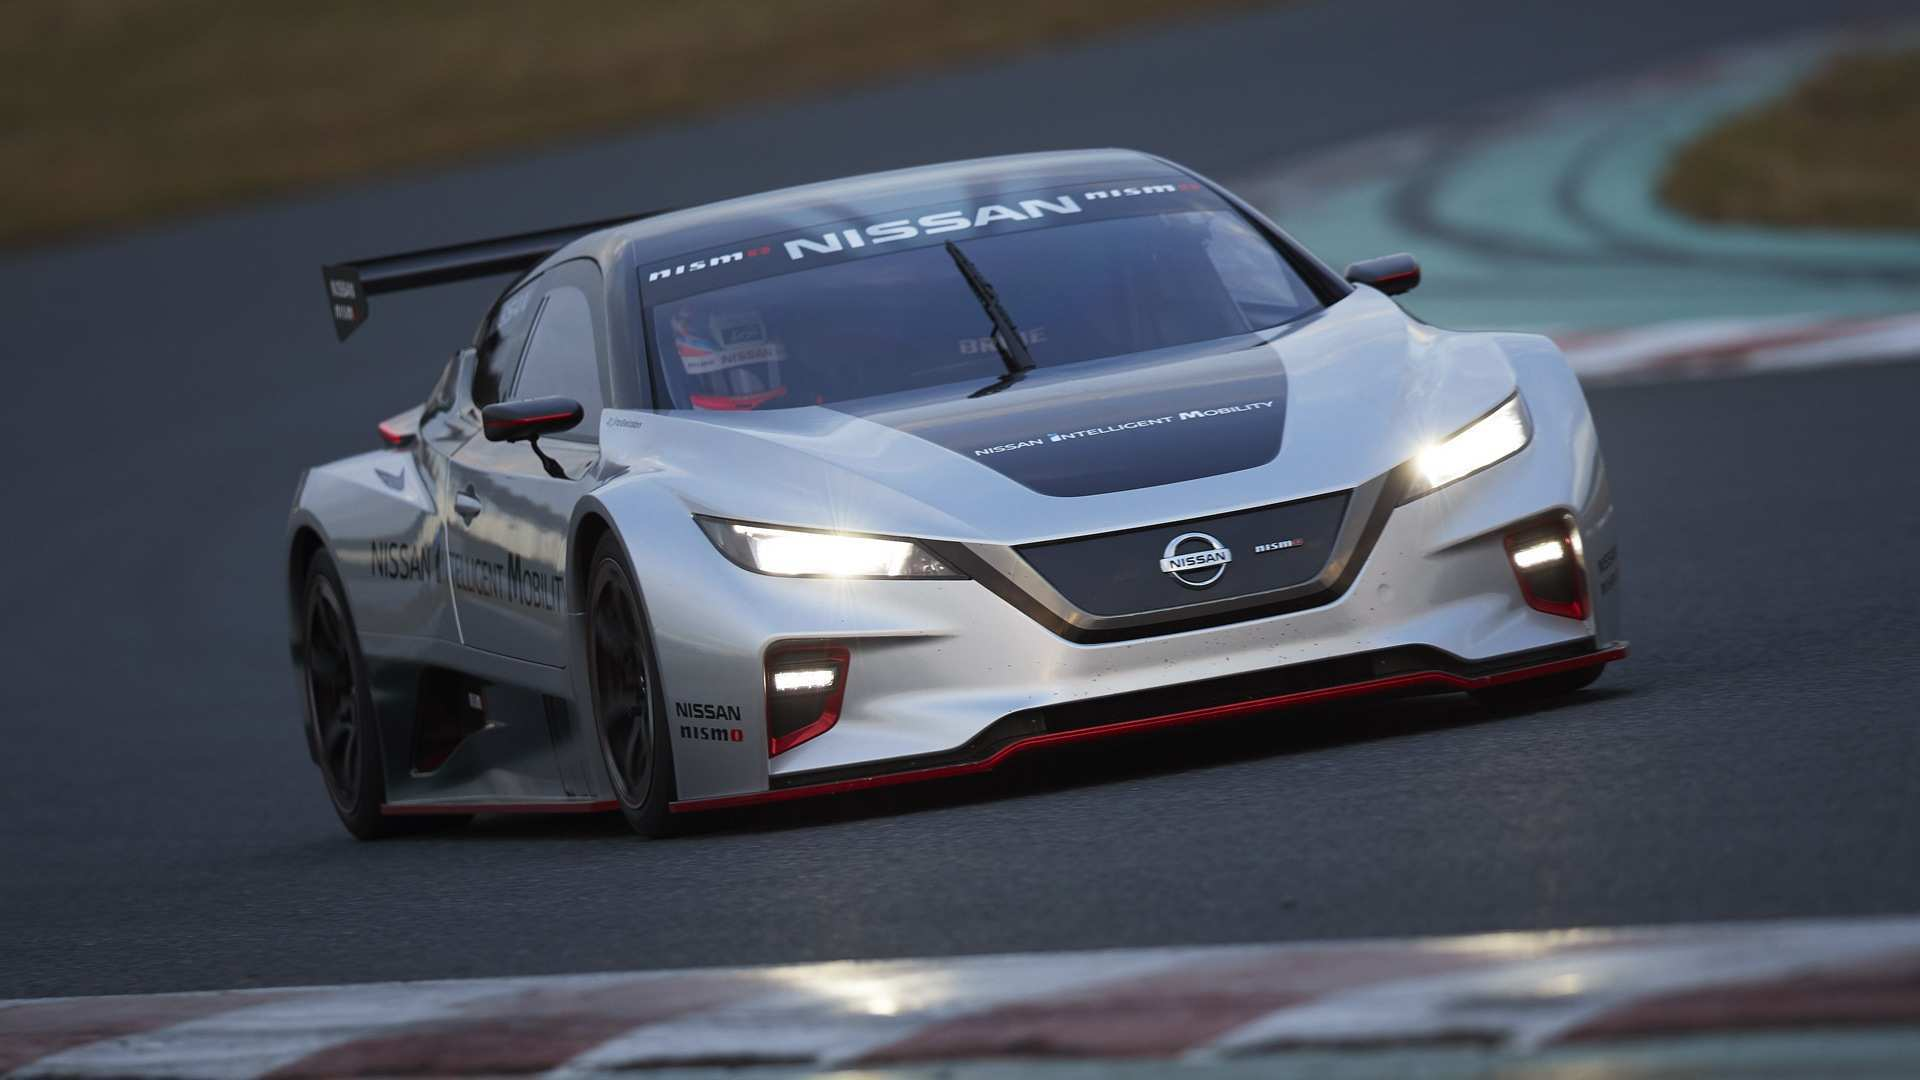 12 New Nissan Leaf Nismo 2019 Performance And New Engine Rumors with Nissan Leaf Nismo 2019 Performance And New Engine